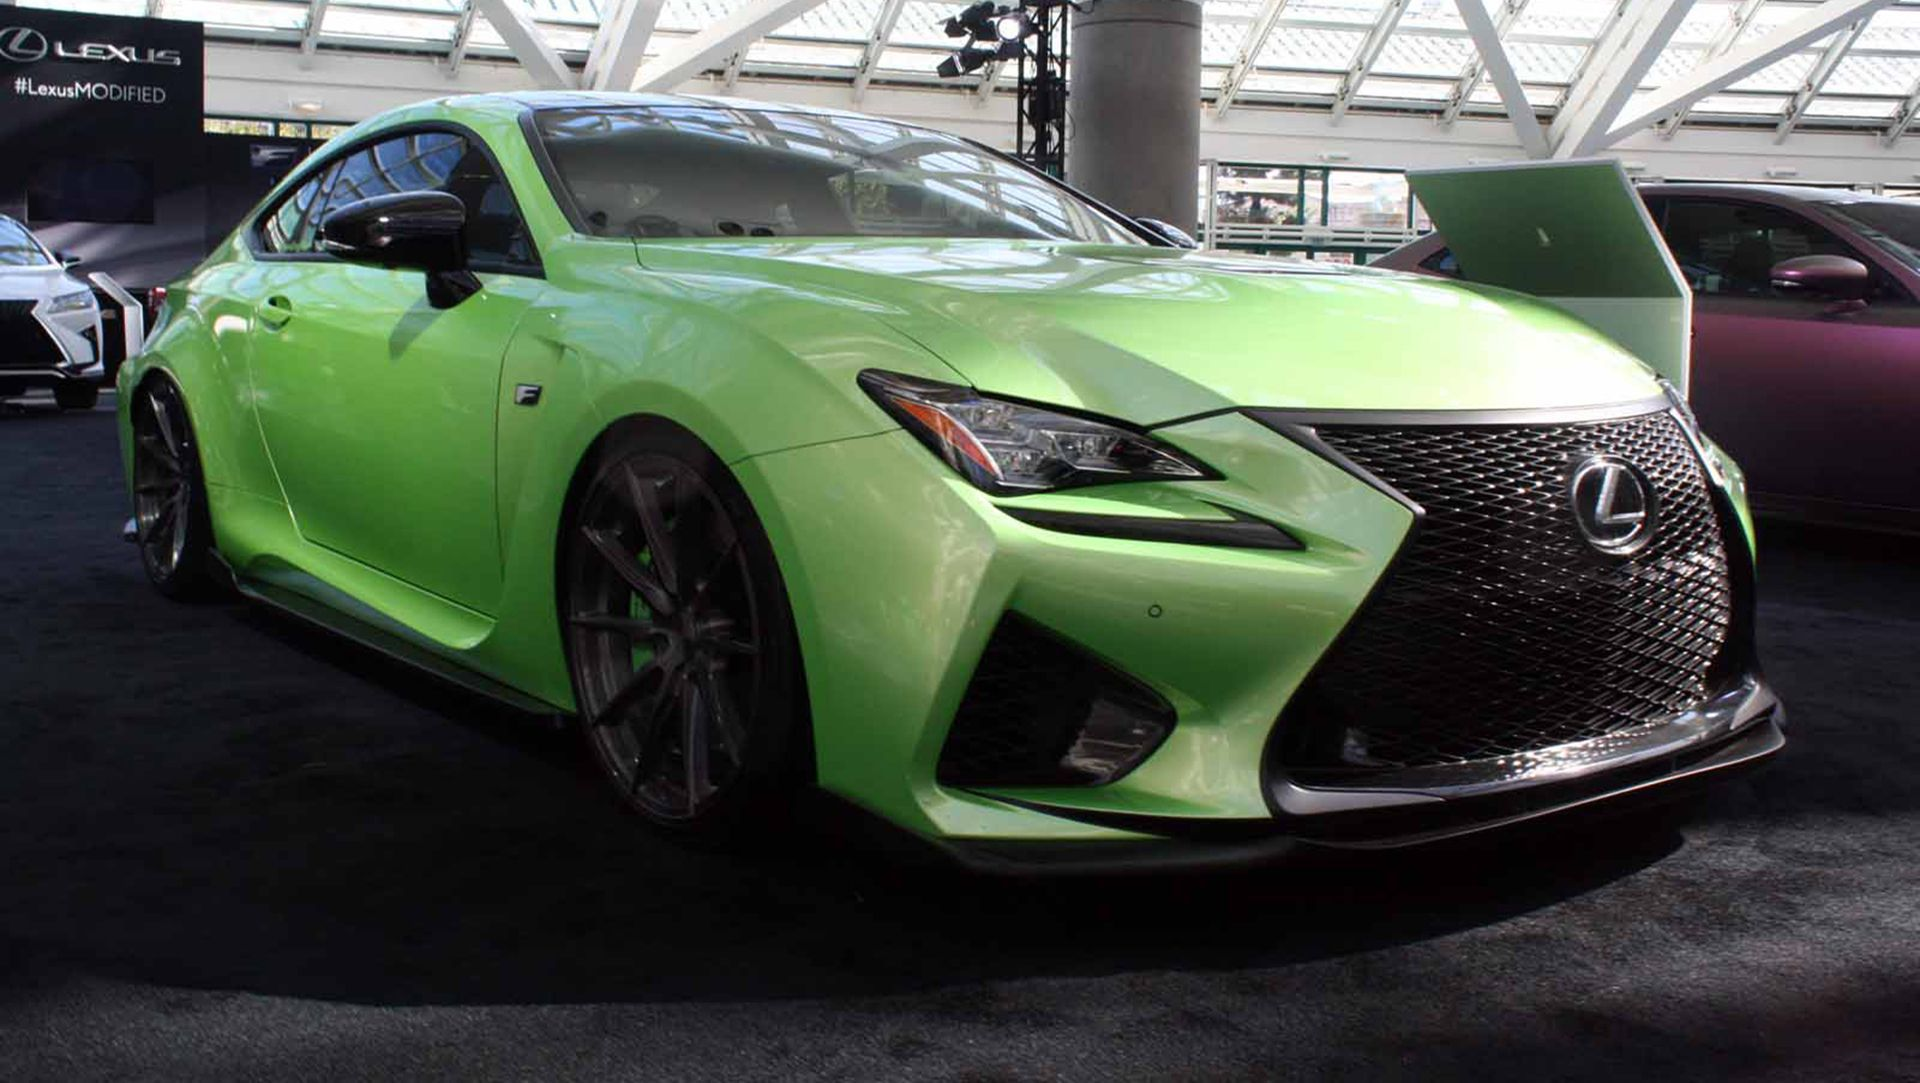 2015 Los Angeles Auto Show Lexus Brings Army of Modified Cars